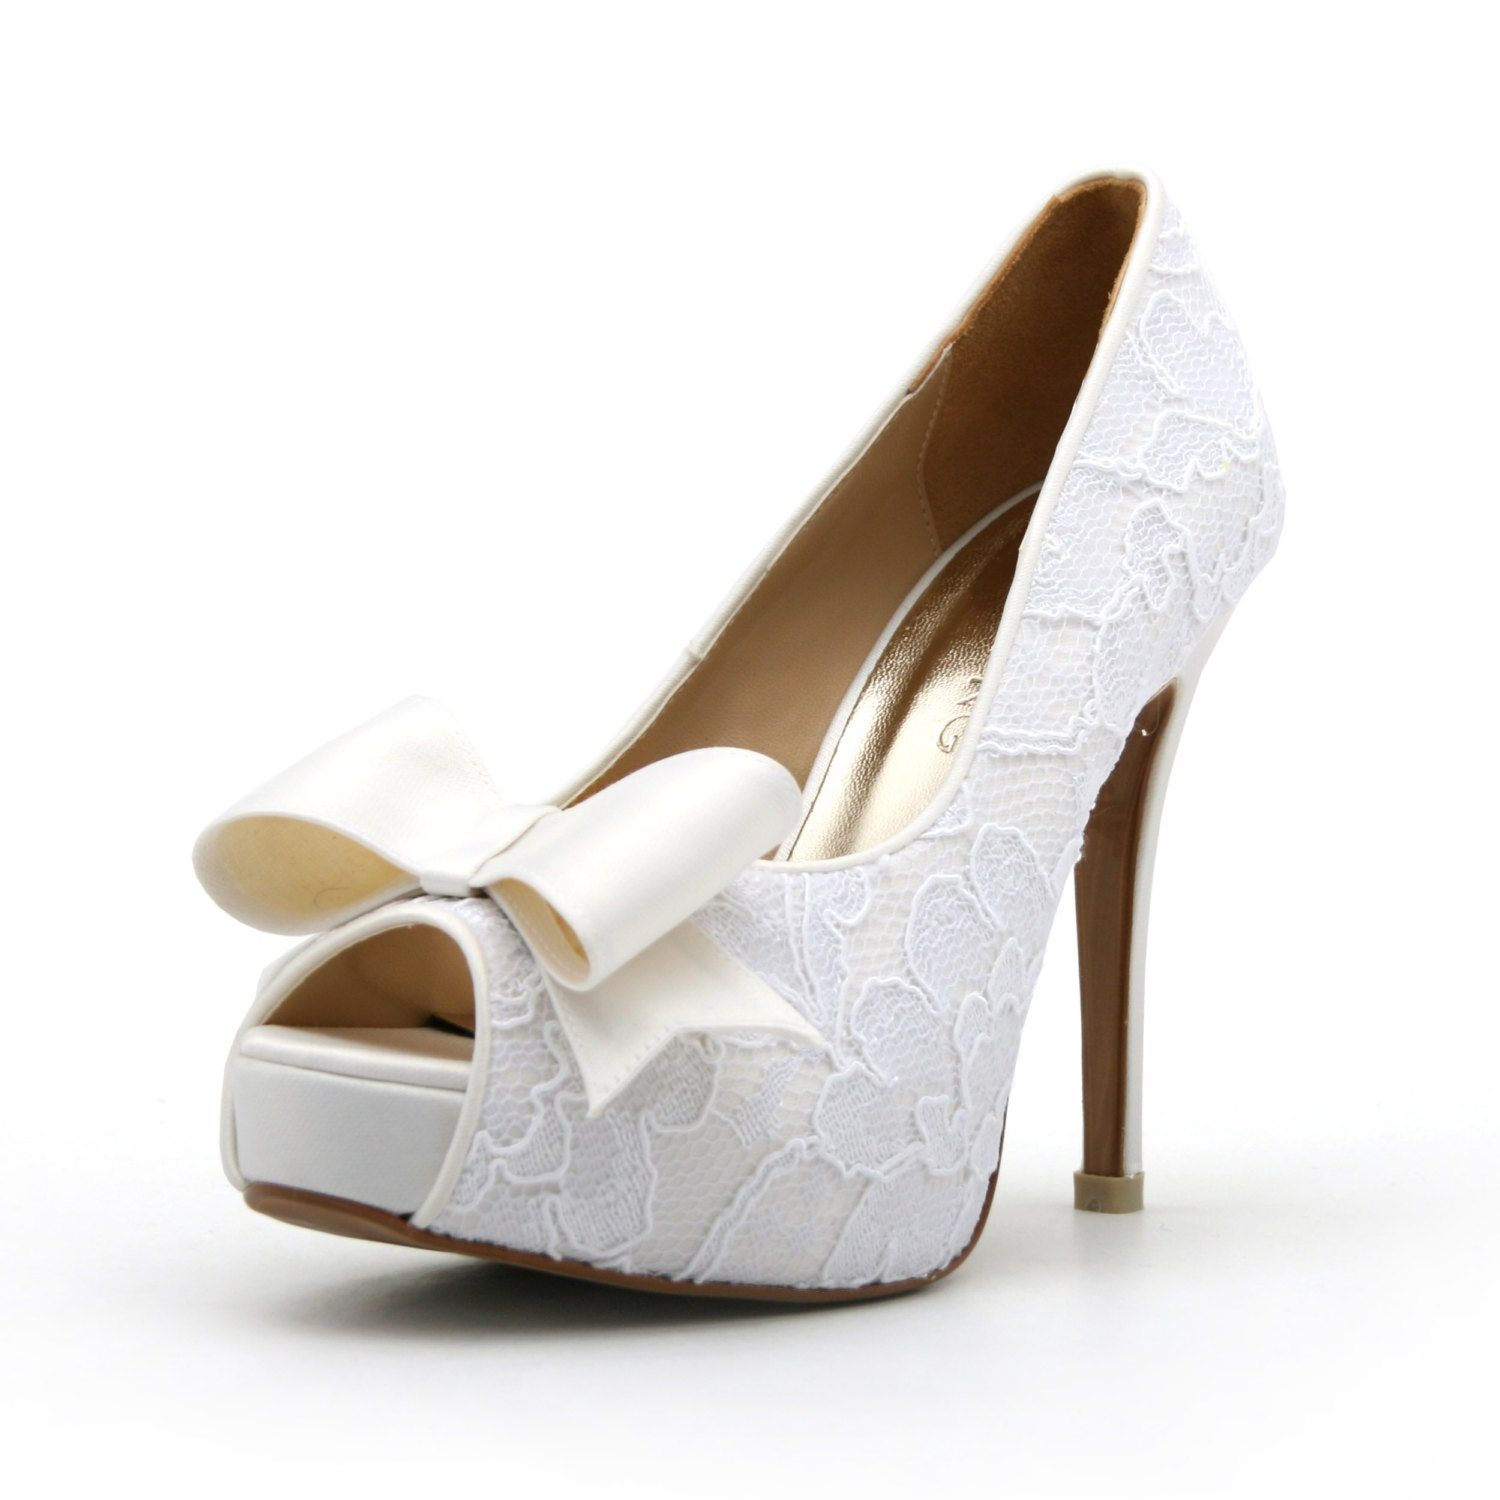 Lace White Wedding Shoe with Bow. Peep Toe Lace White Bridal